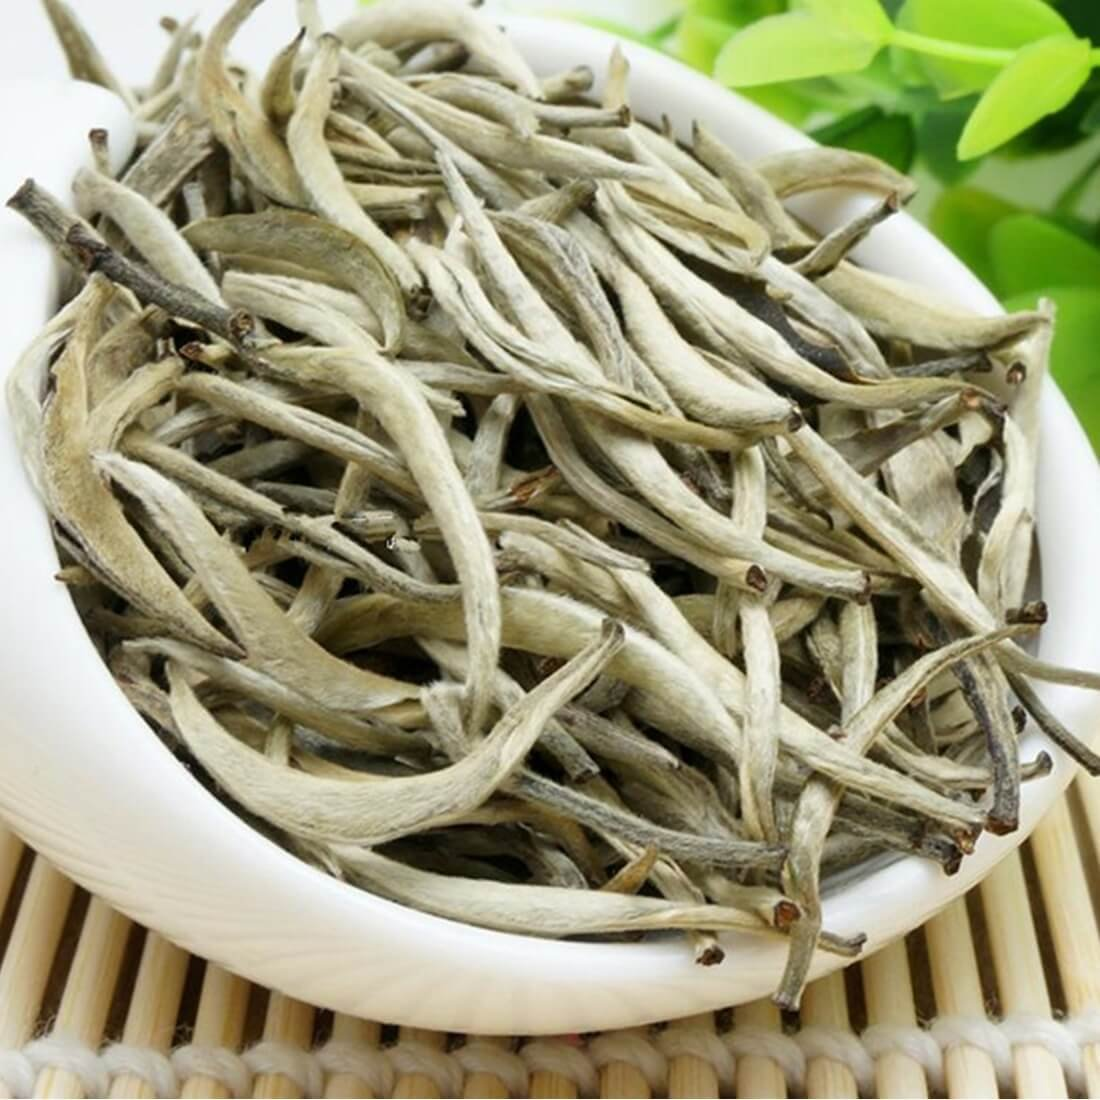 Premium Chinese Organic Bai Hao Yin Zhen Silver Needle White Leaf Tea - From Hunan Southern China (500g (17.63 ounce)) by China Farm Products